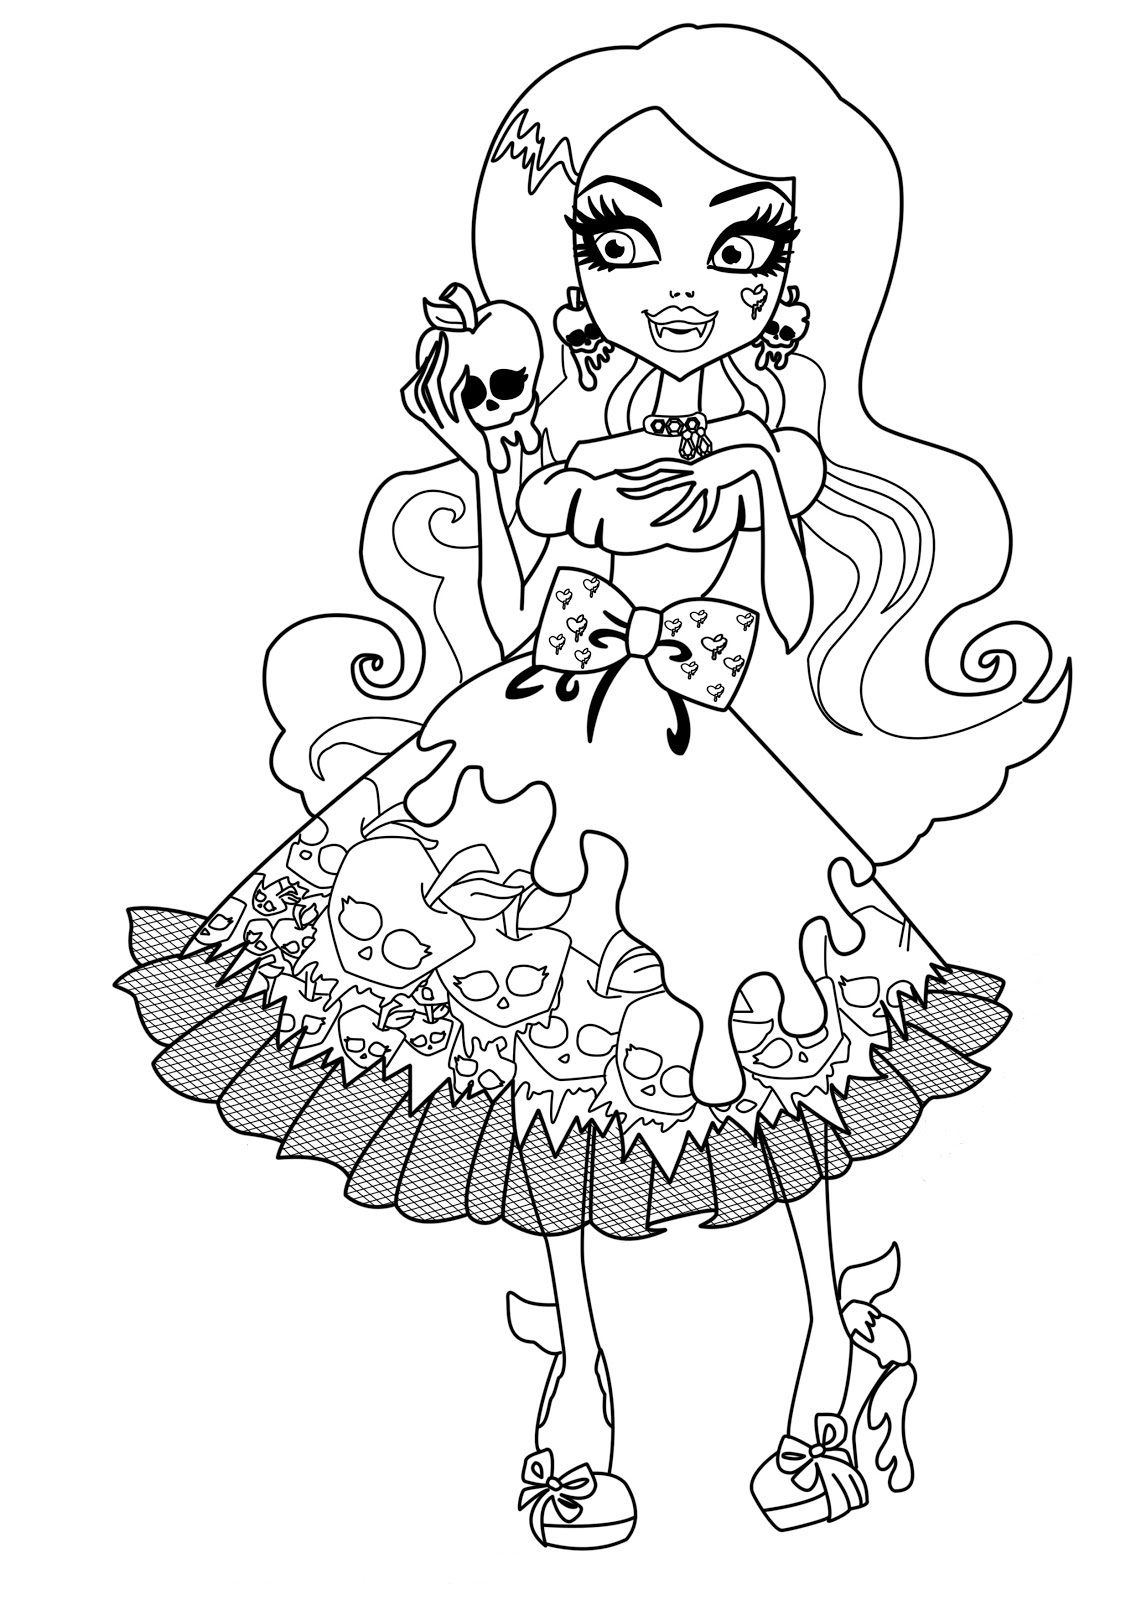 Draculaura Monster High Dolls Coloring Pages Monster High pour Image Monster High A Imprimer